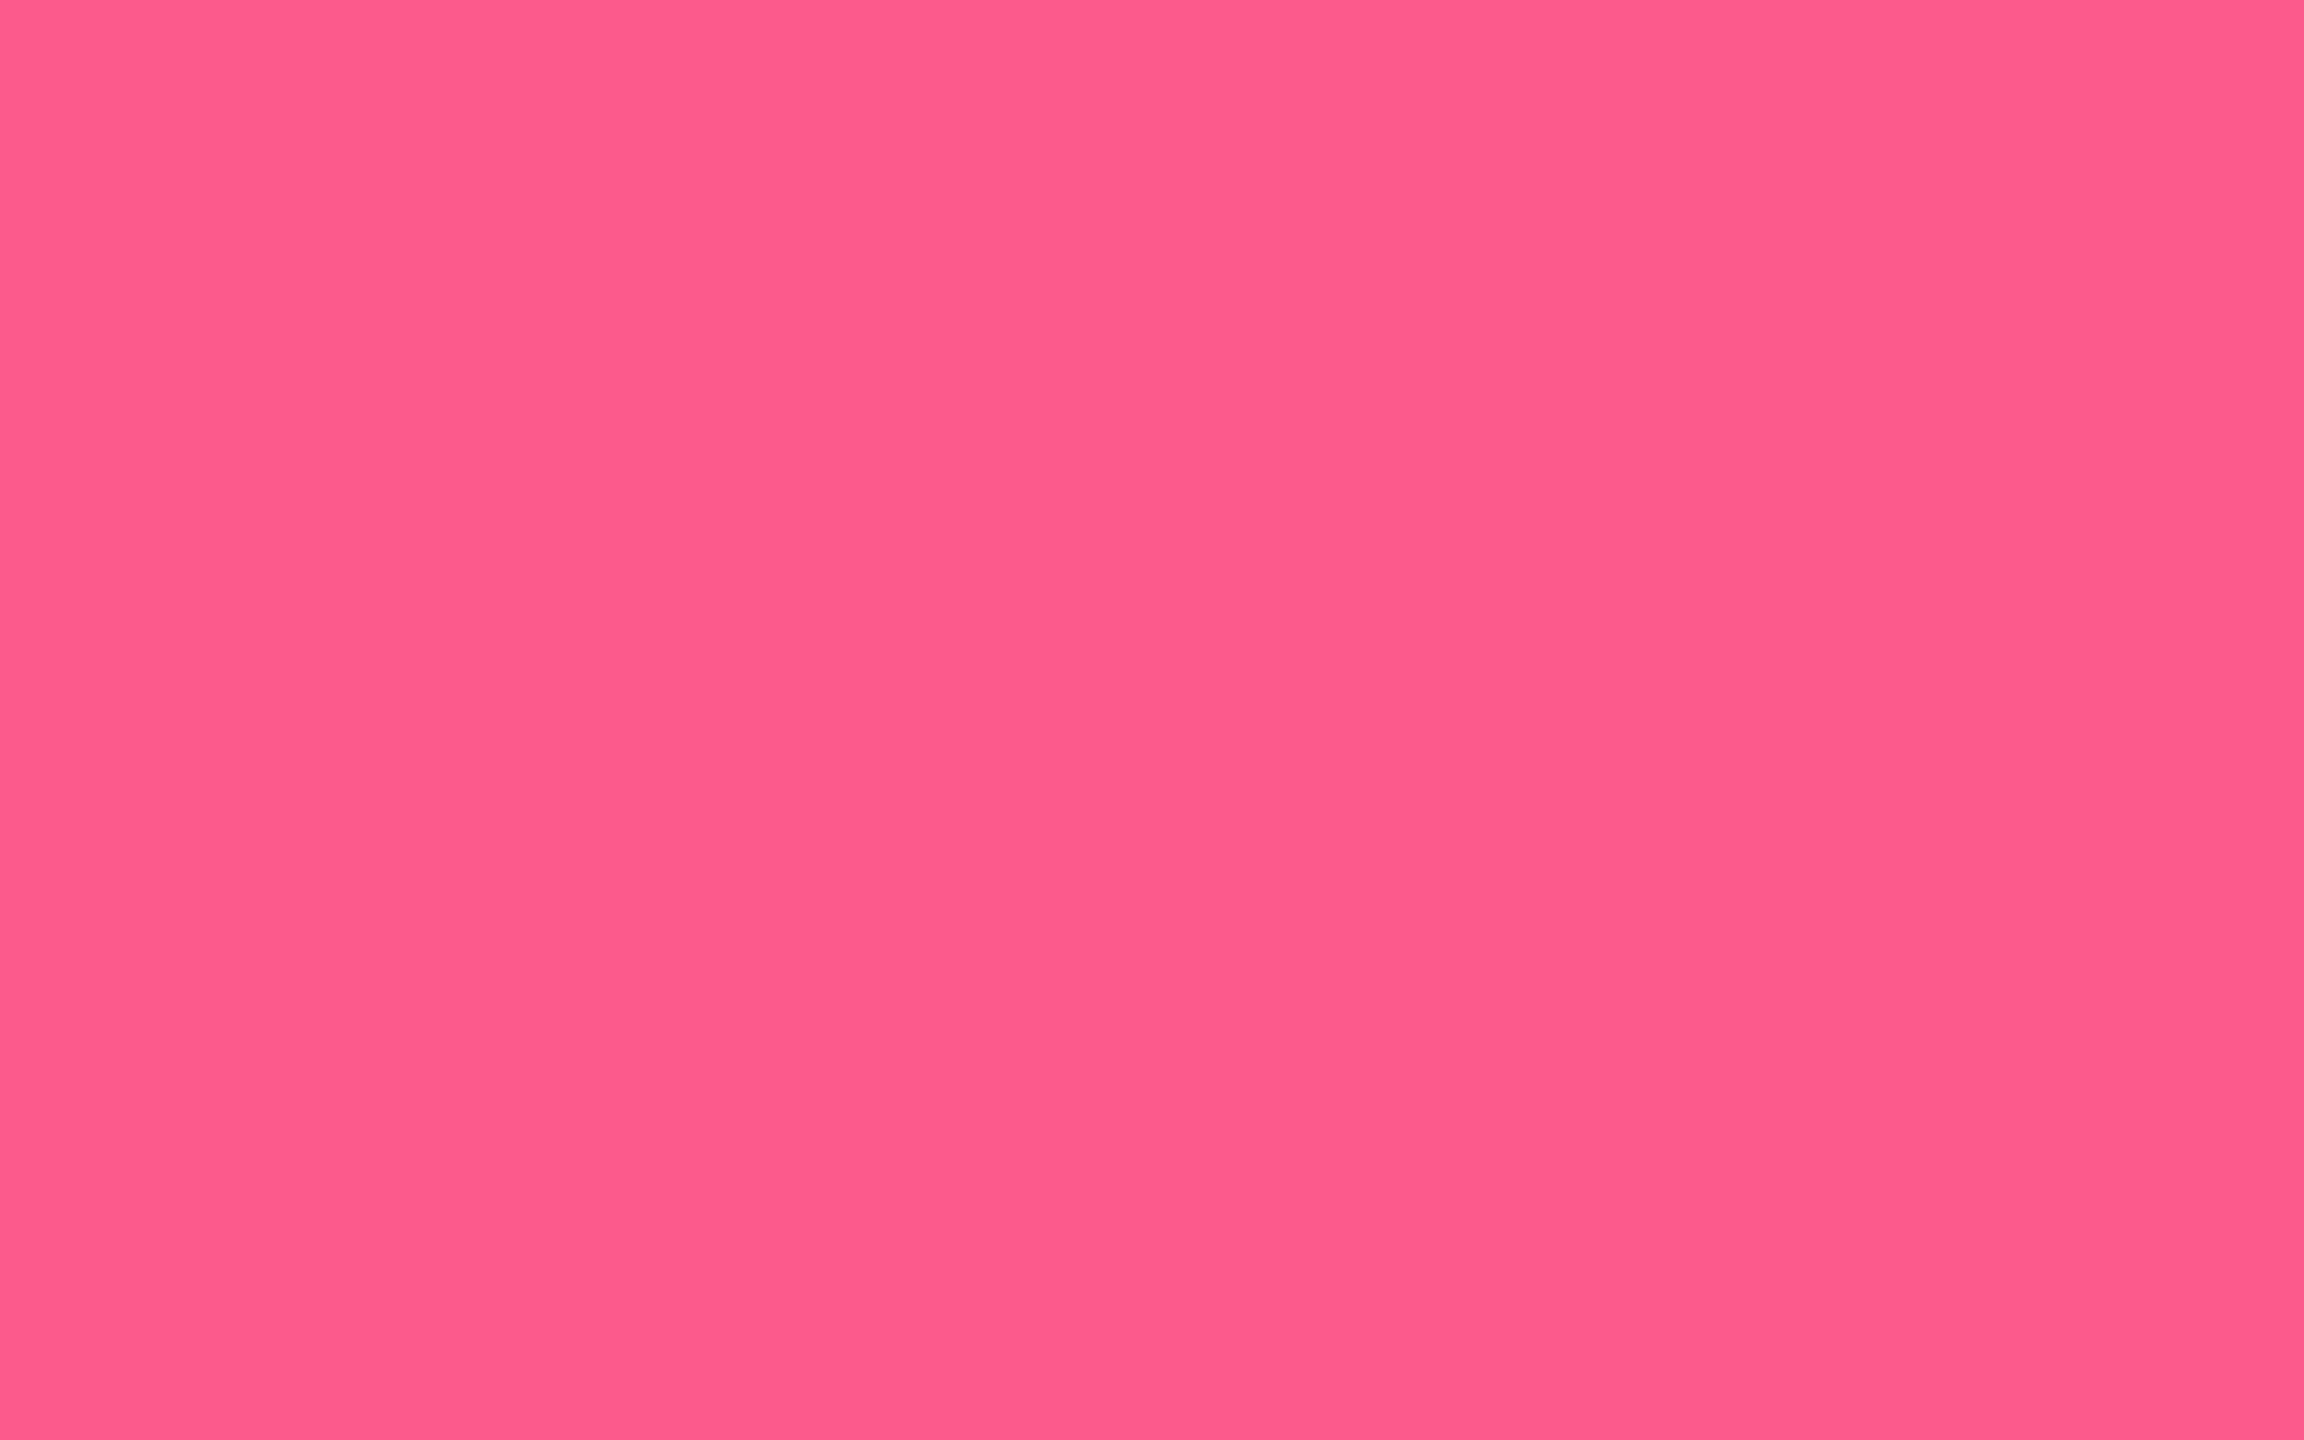 2304x1440 Strawberry Solid Color Background